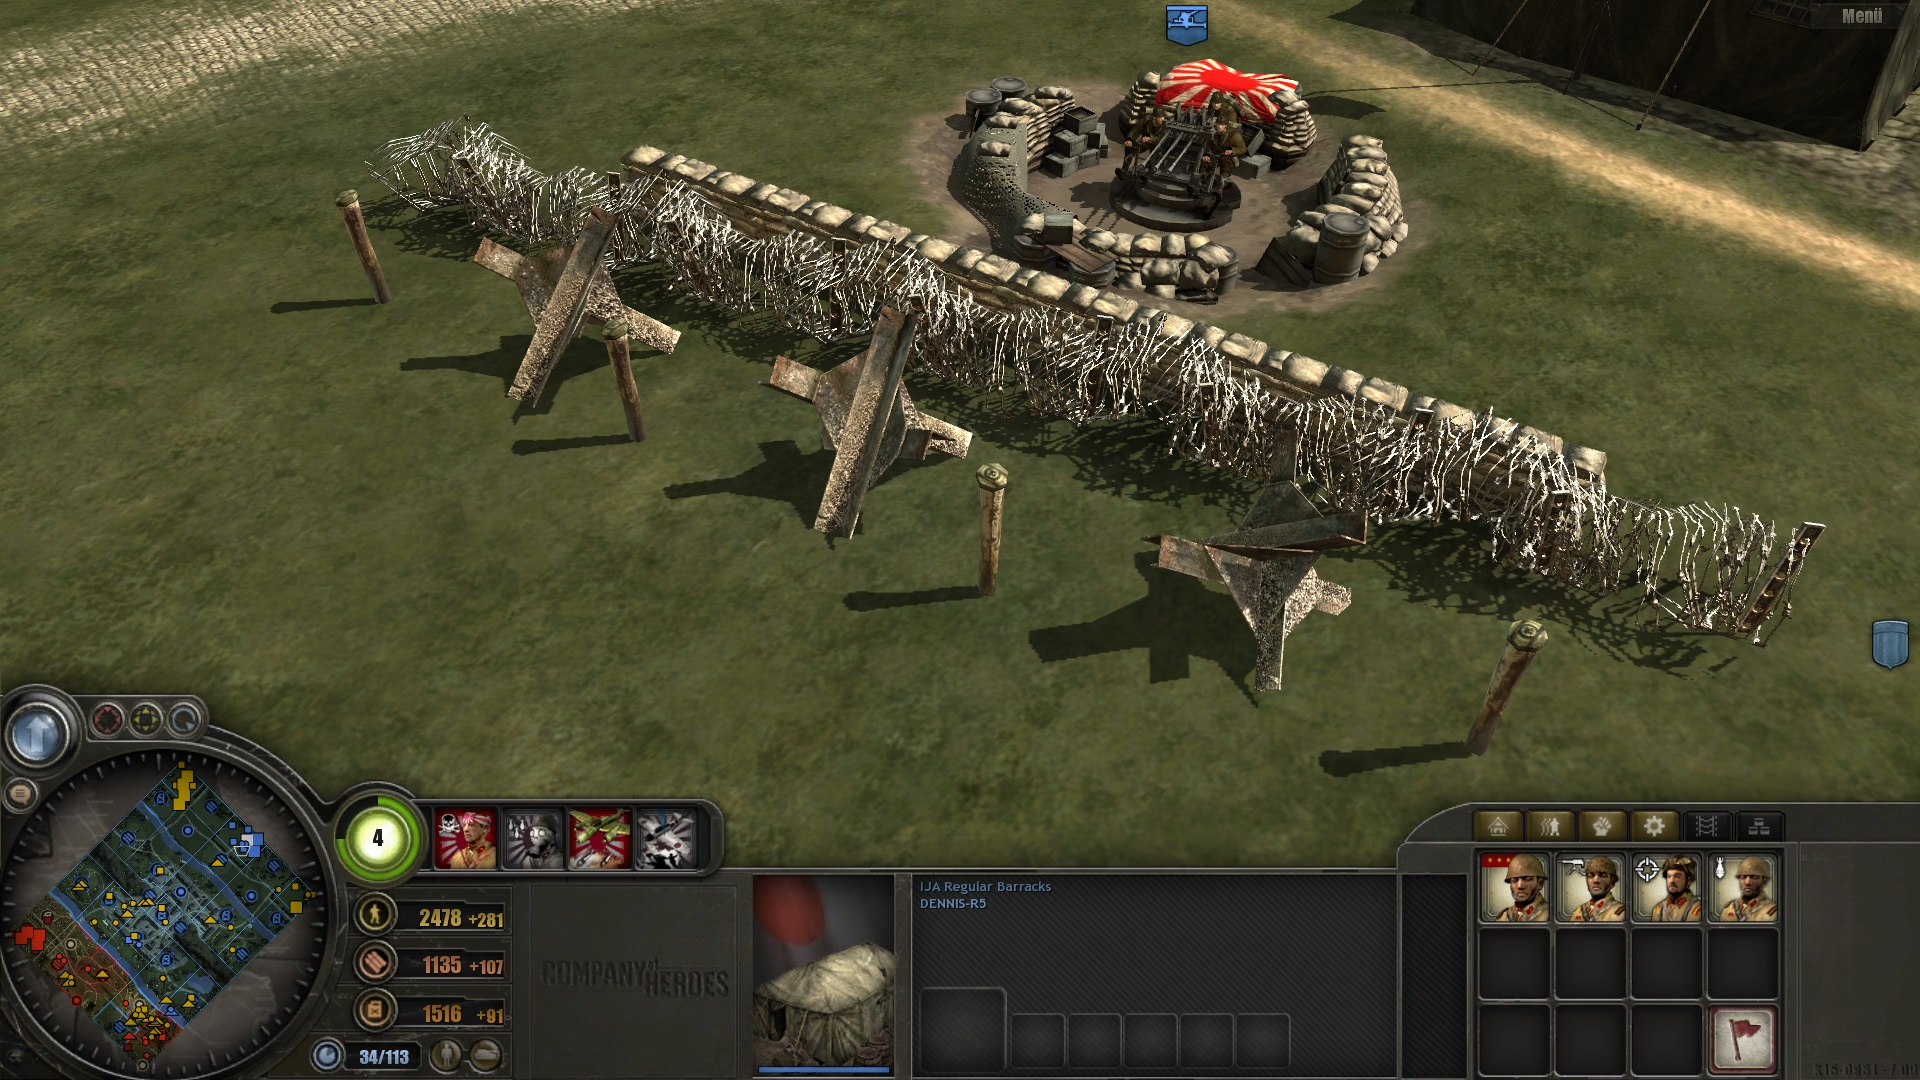 Japanese Defense Image Coh Far Eastern Blitzkrieg Front Mod Fusion For Company Of Heroes Mod Db